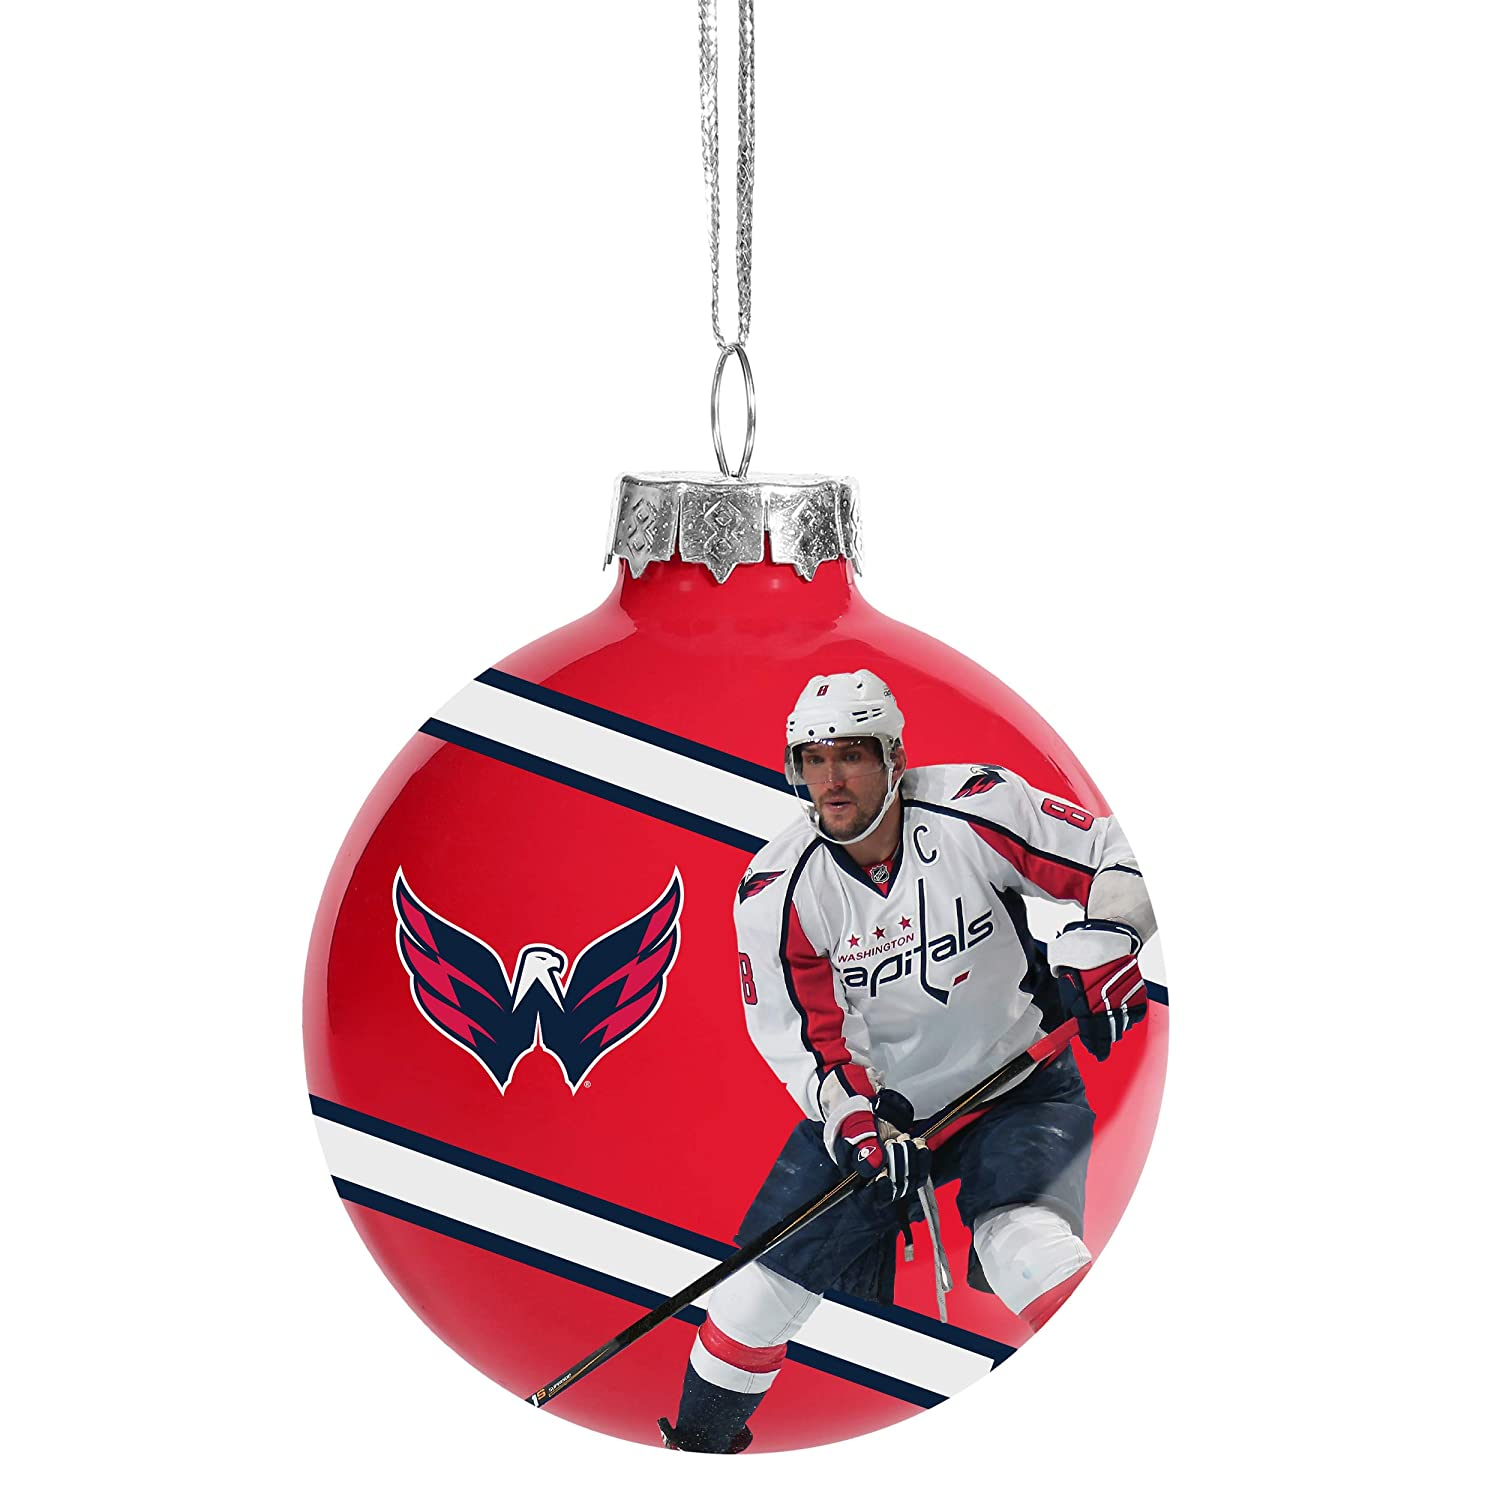 FOCO Washington Capitals 2018 Stanley Cup Champs Glass Ball Christmas Tree Ornament 2 5 8 Alex Ovechkin